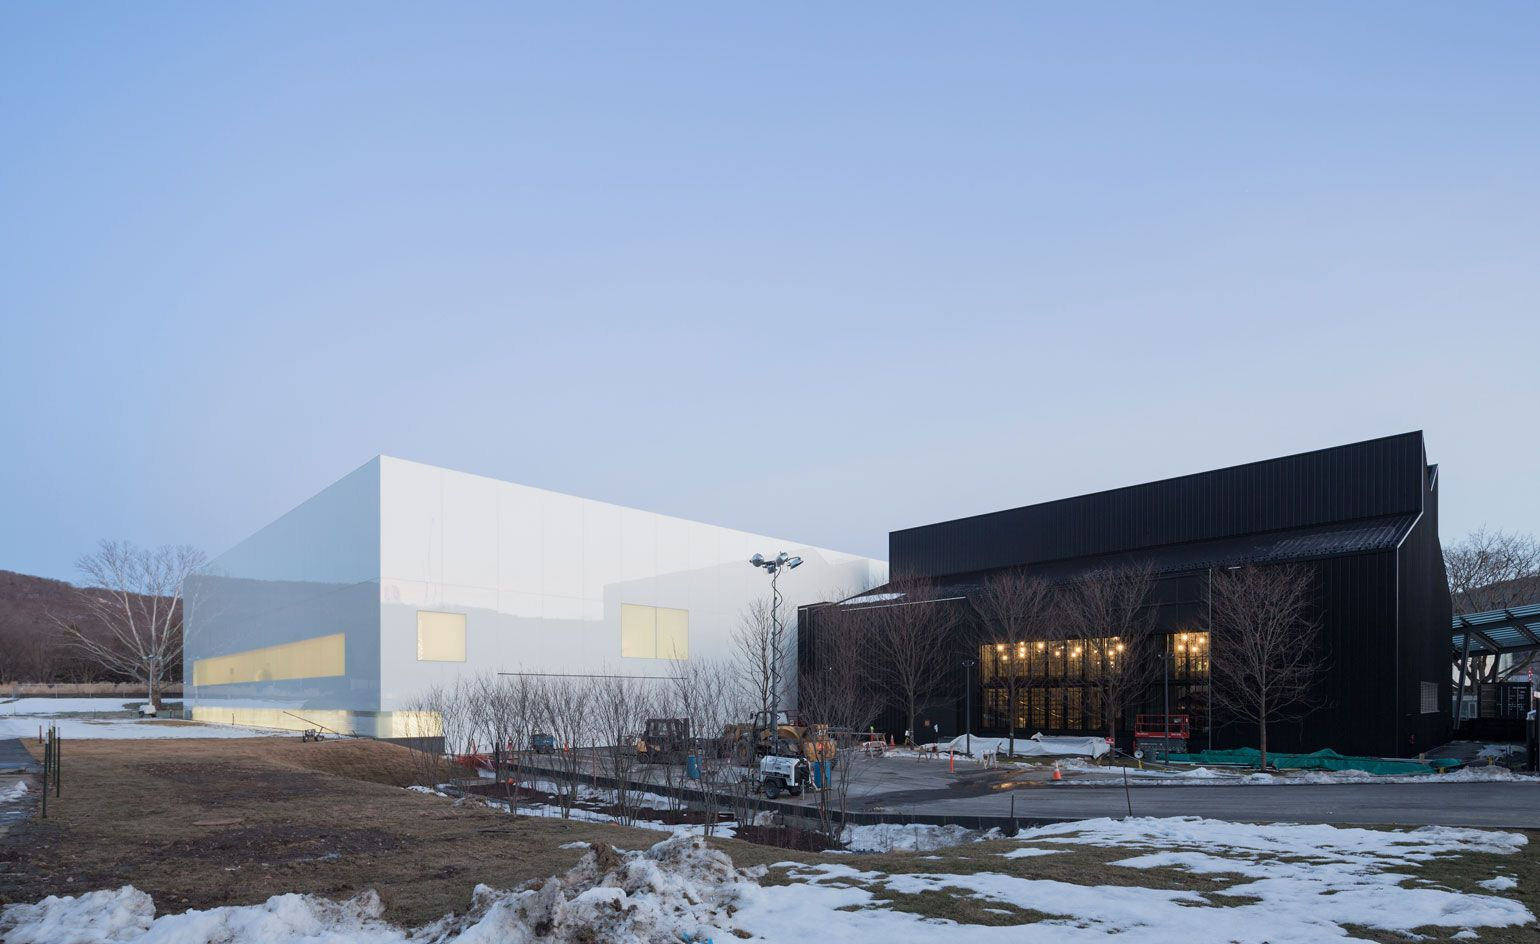 Corning Museum of Glass by Thomas Phifer and Partners